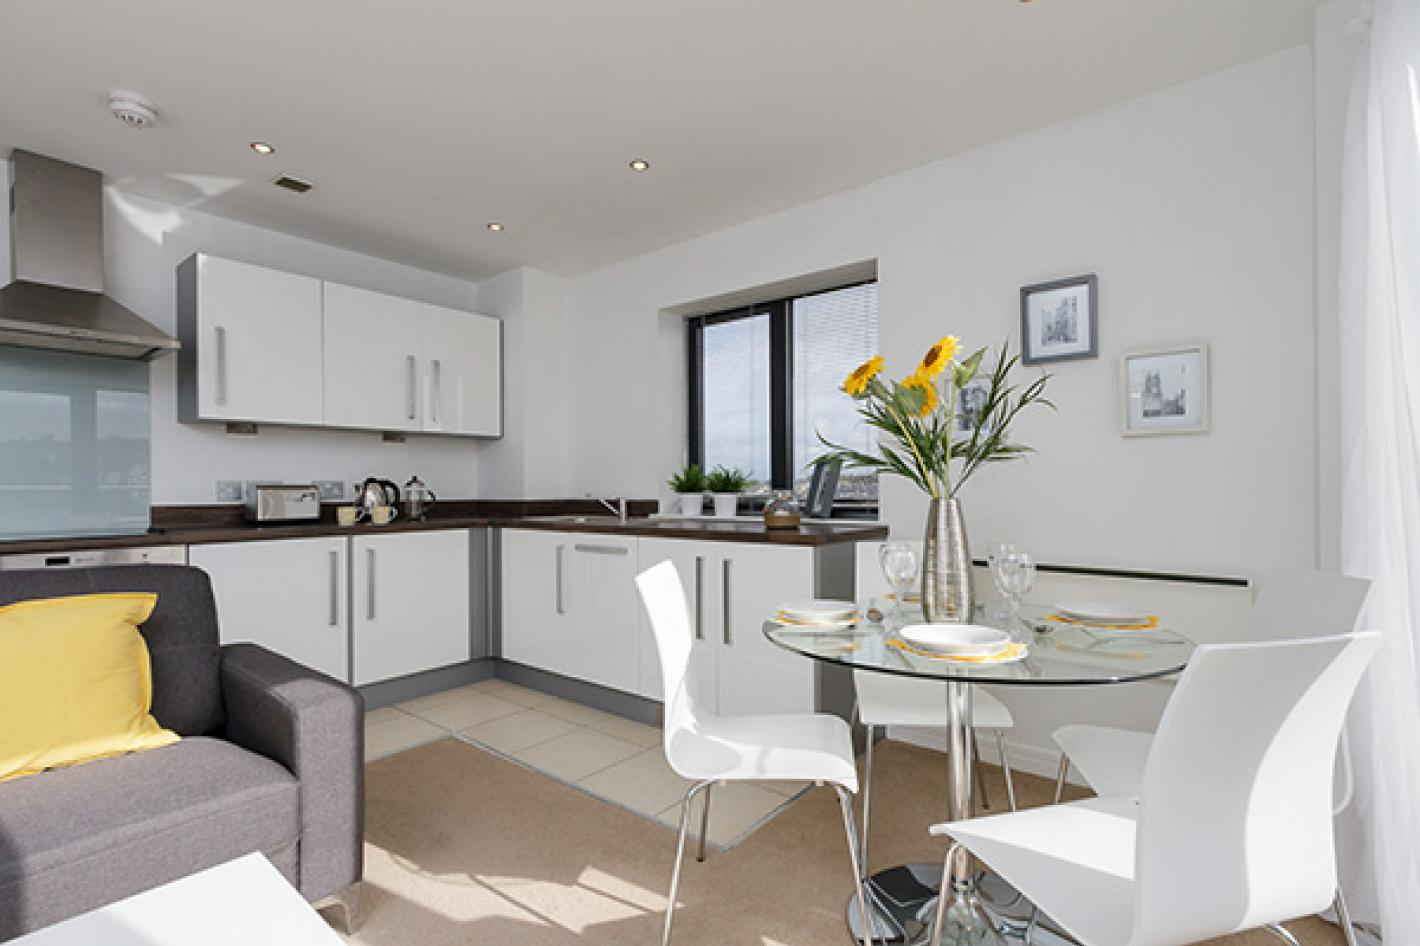 kitchen and dining area, white cupboards glass table and white chairs